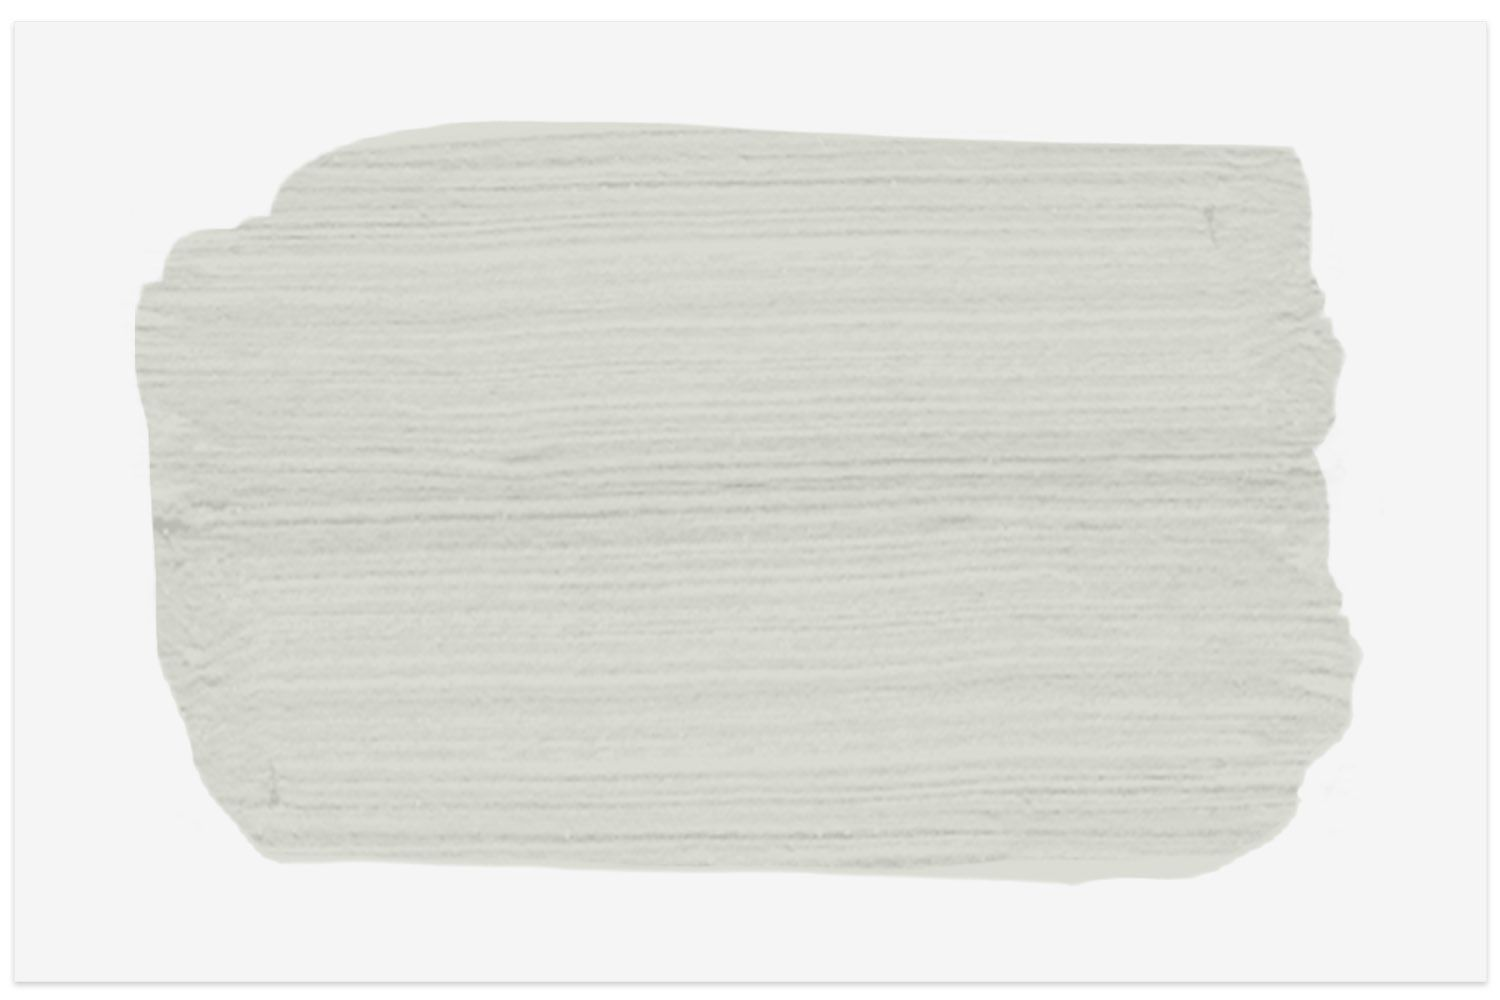 Silver Feather BWC-29 paint swatch from Behr